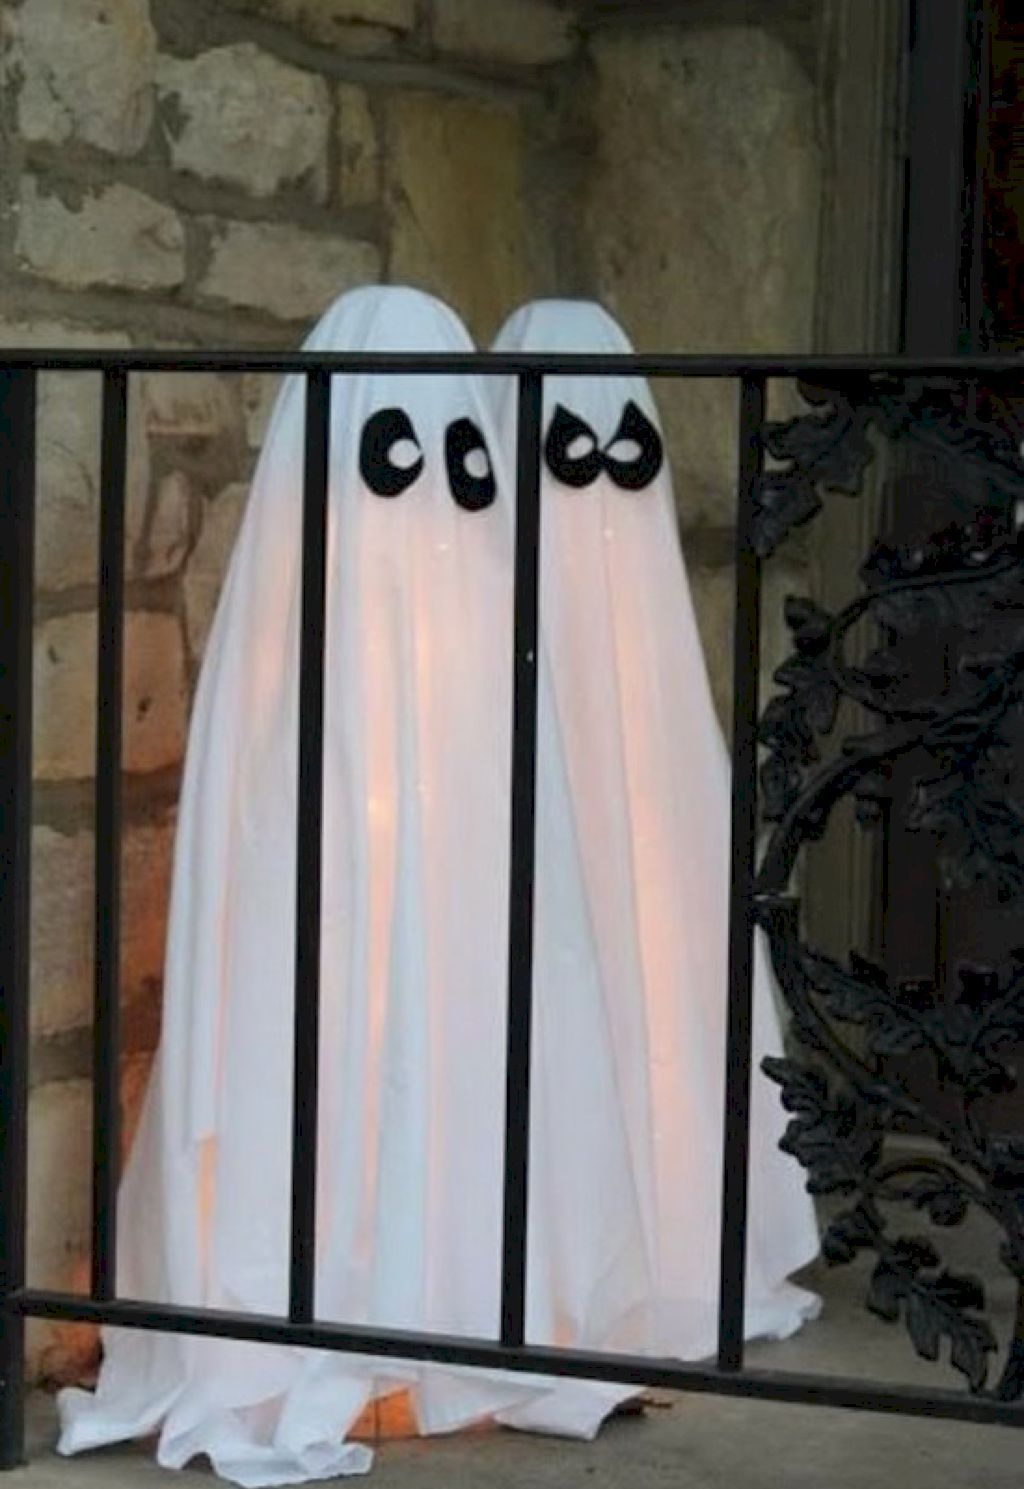 47 Easy Homemade Halloween Decor Ideas Homemade halloween - Inexpensive Halloween Decorations